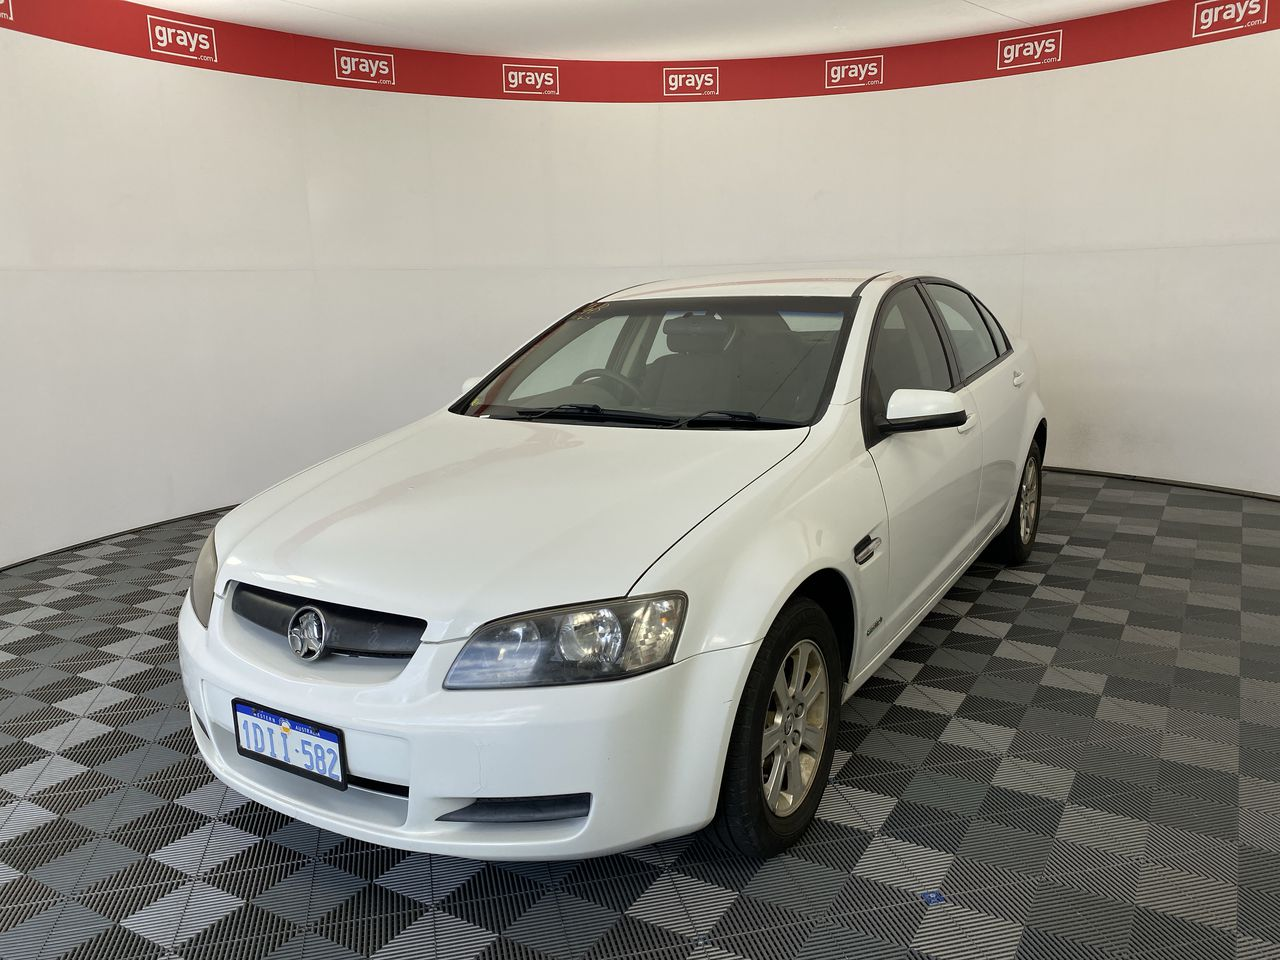 2010 Holden Commodore Omega VE Automatic Sedan